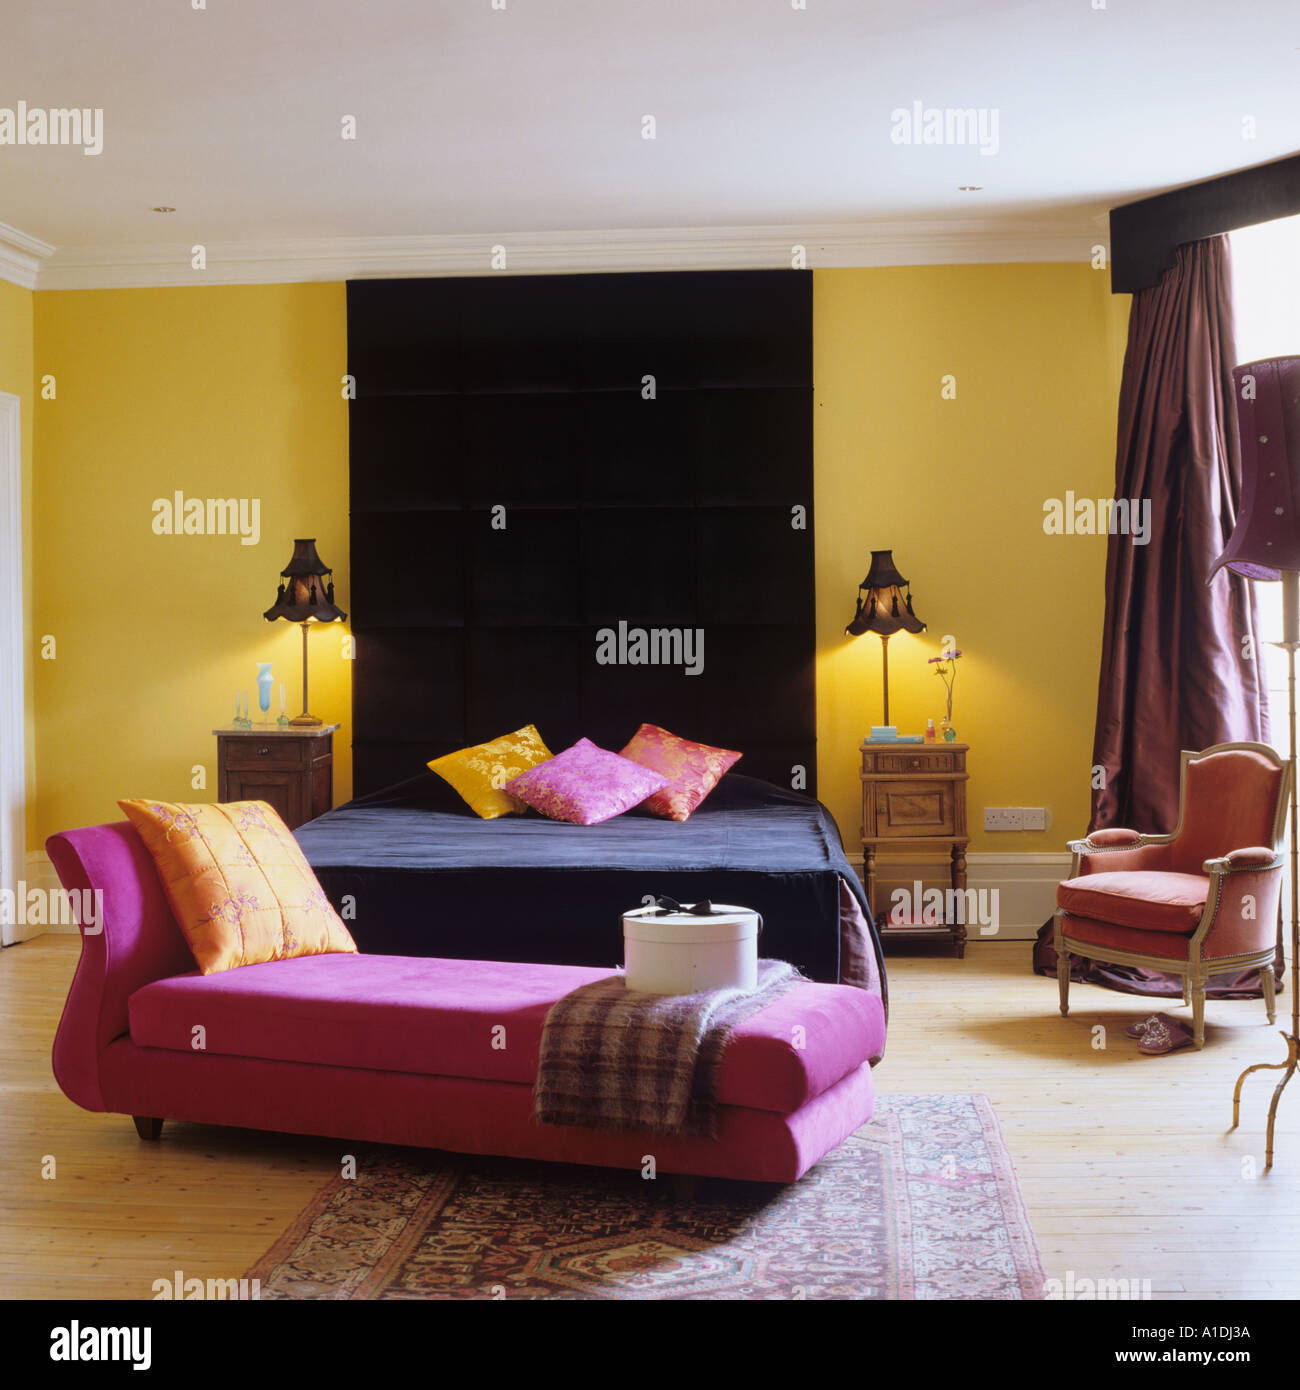 Pink chaise longue and black bed in yellow bedroom Stock ...